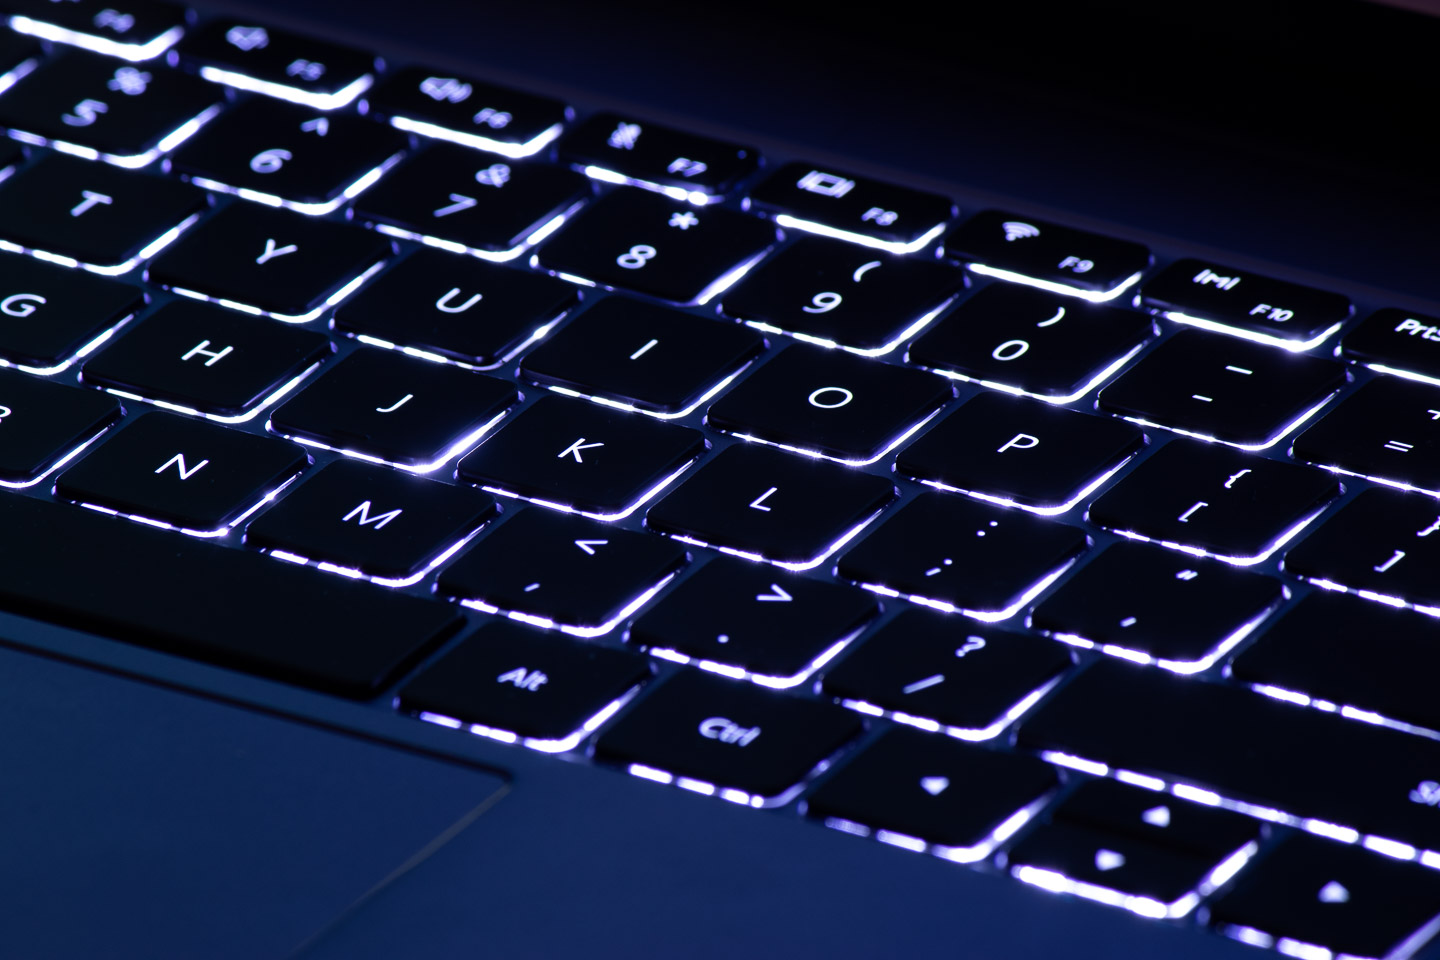 big_huawei-matebook-13-backlit-keyboard.jpg